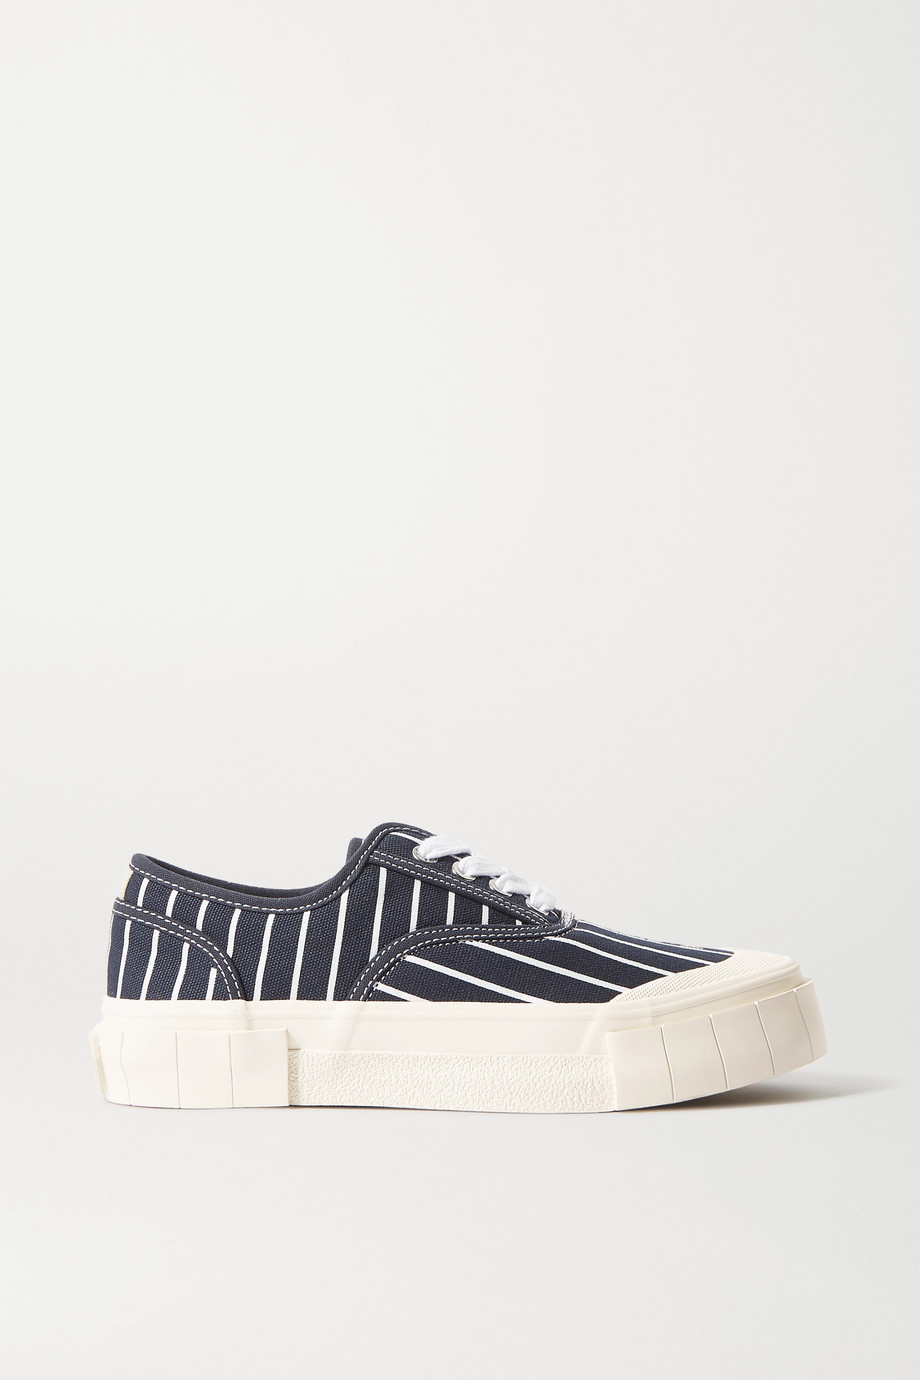 GOOD NEWS + NET SUSTAIN Hurler pinstriped organic cotton-canvas sneakers